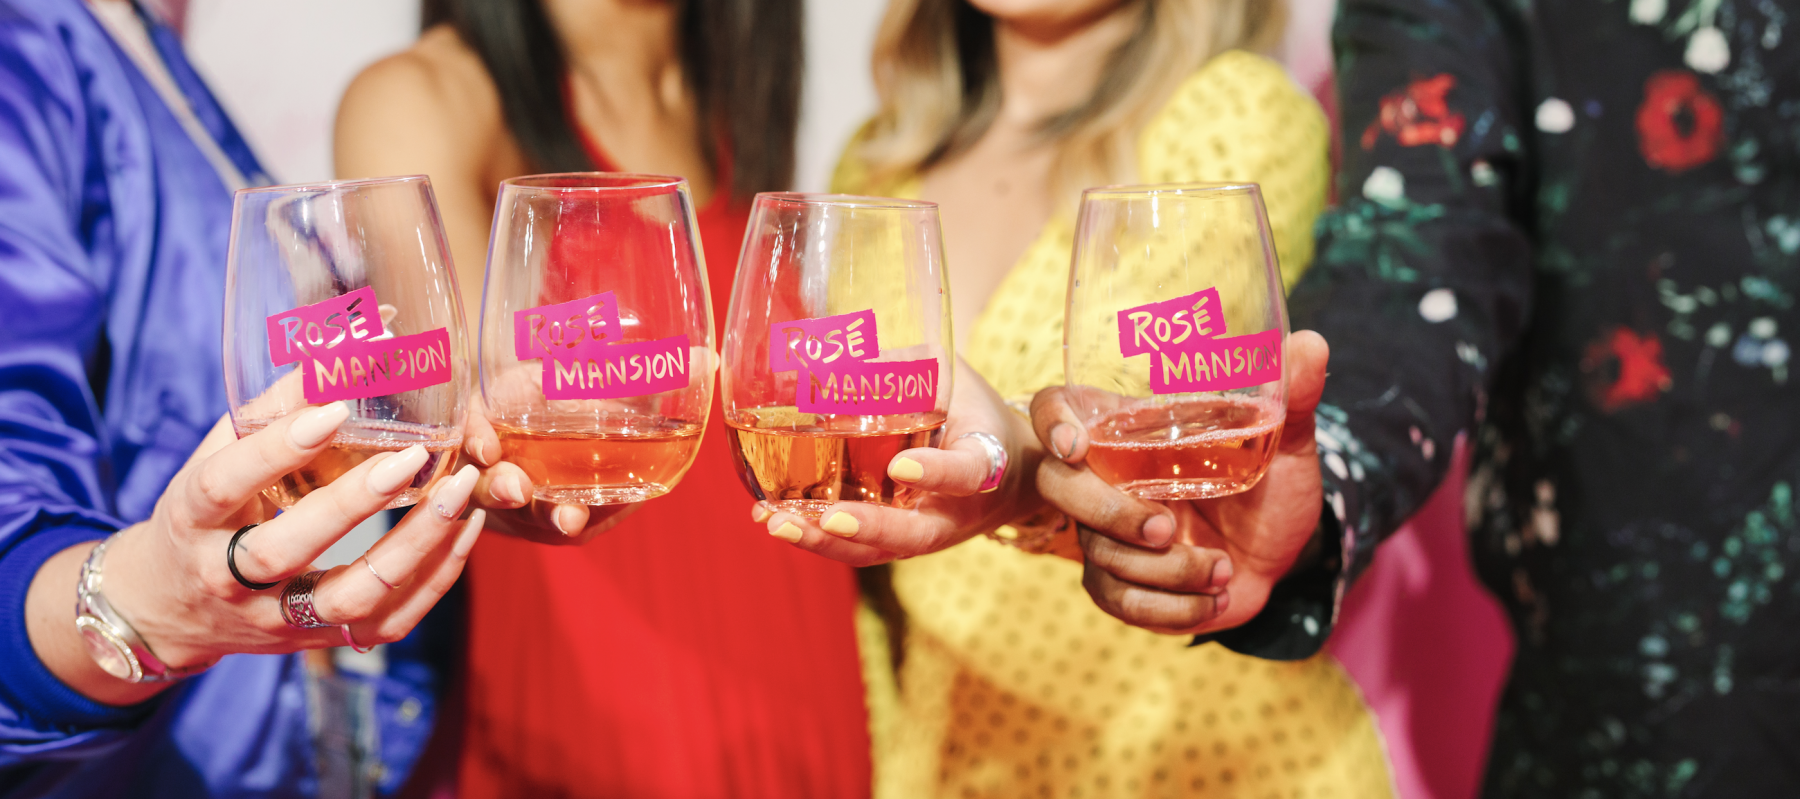 Get Your Tickets to This Summer's Bigger and Better Rosé Mansion Today